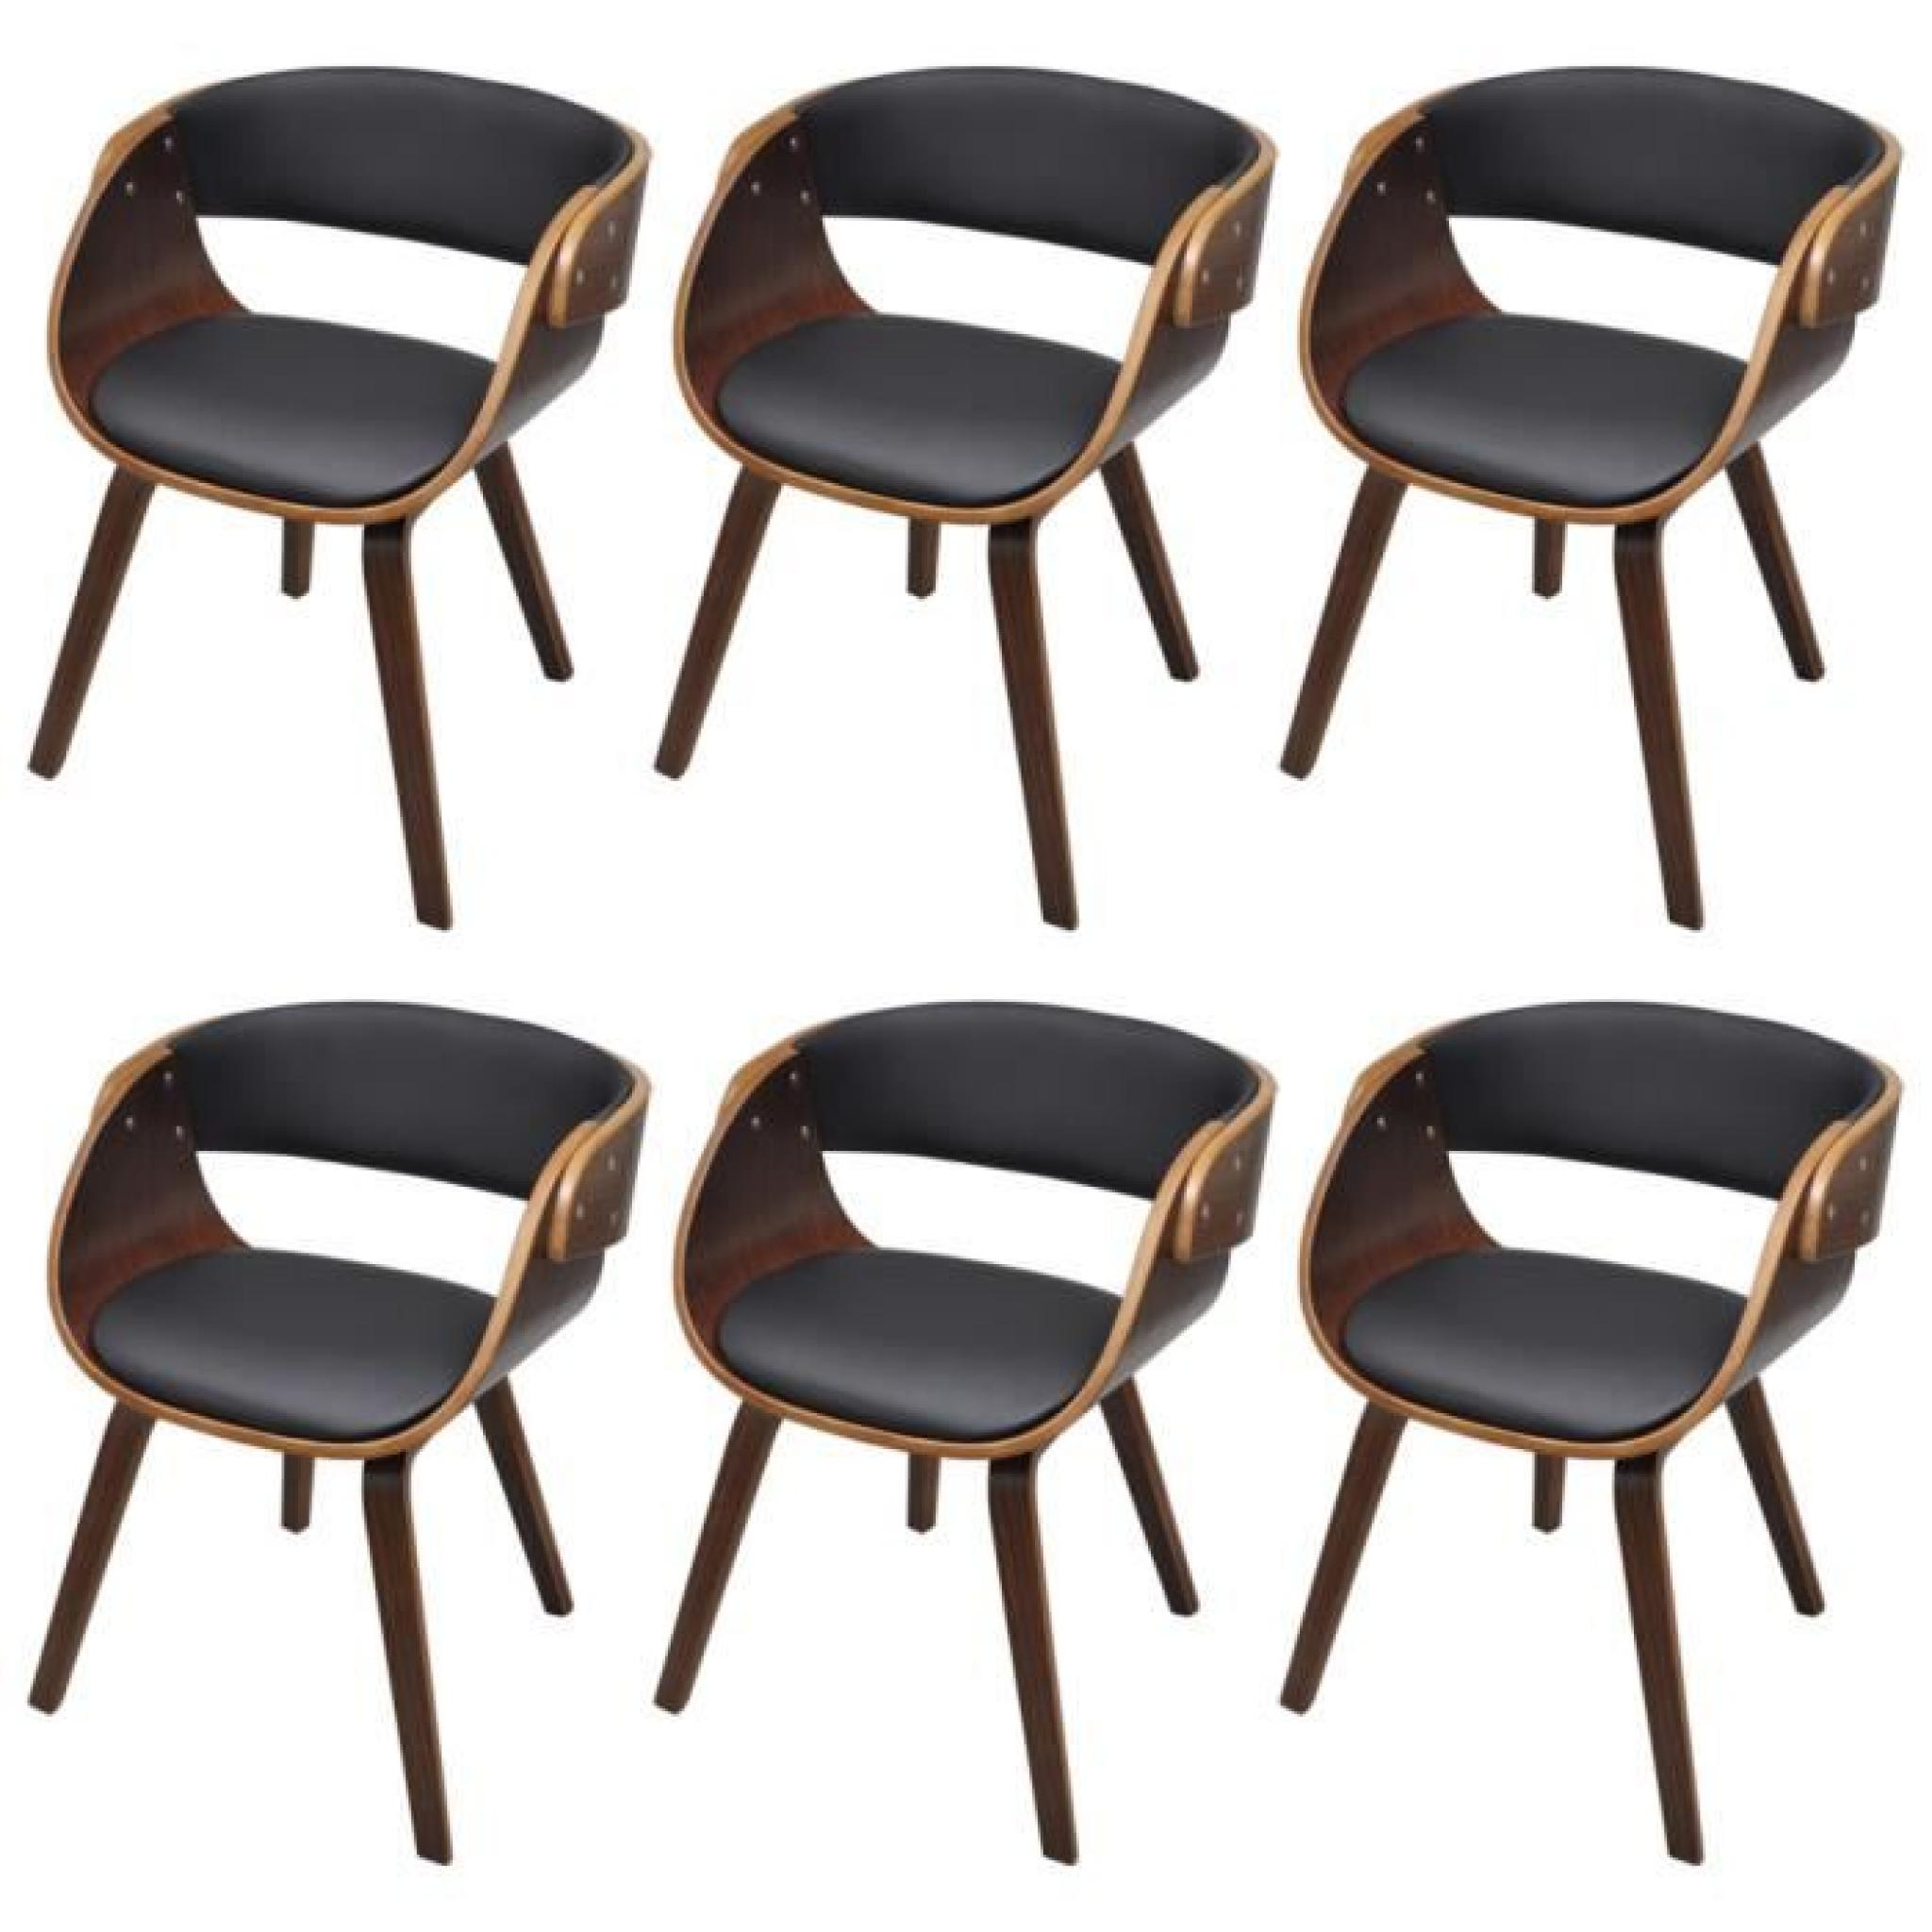 lot de 6 chaises accoudoirs salle manger brun. Black Bedroom Furniture Sets. Home Design Ideas